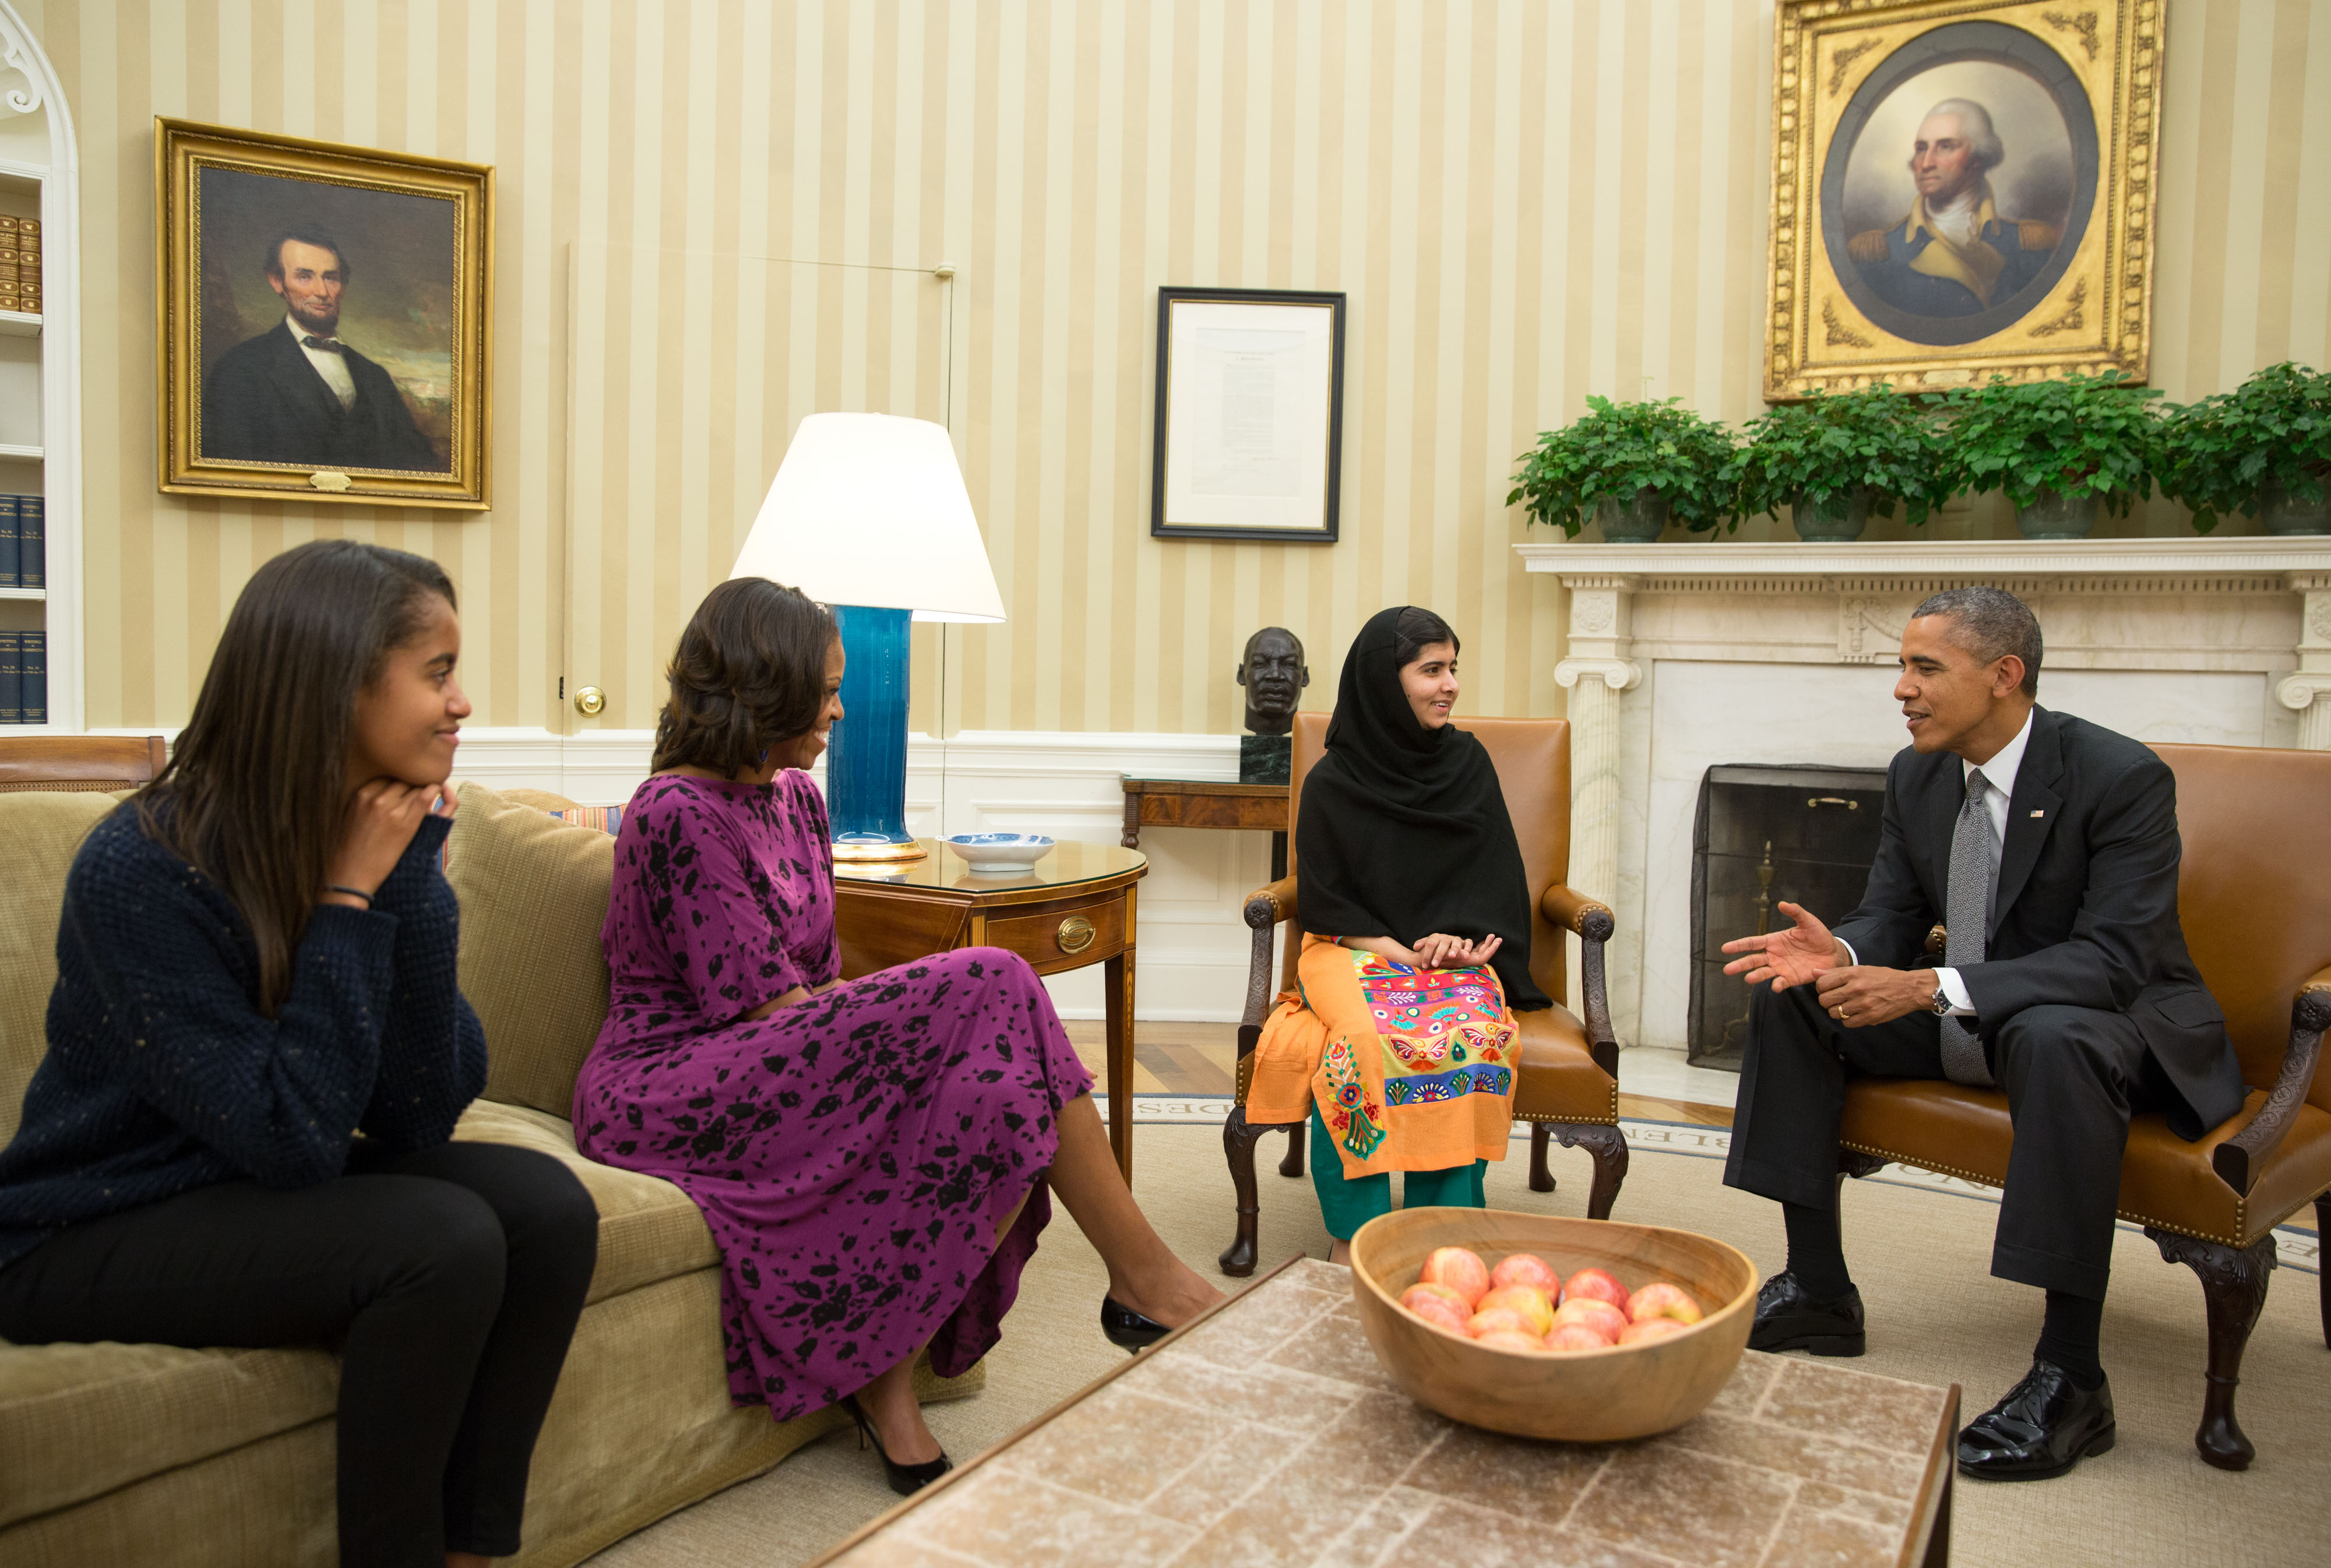 President Barack Obama, First Lady Michelle Obama, and their daughter Malia meet with Malala Yousafzai in the Oval Office, Oct. 11, 2013 (Photograph: Pete Souza/Official White House Photograph)